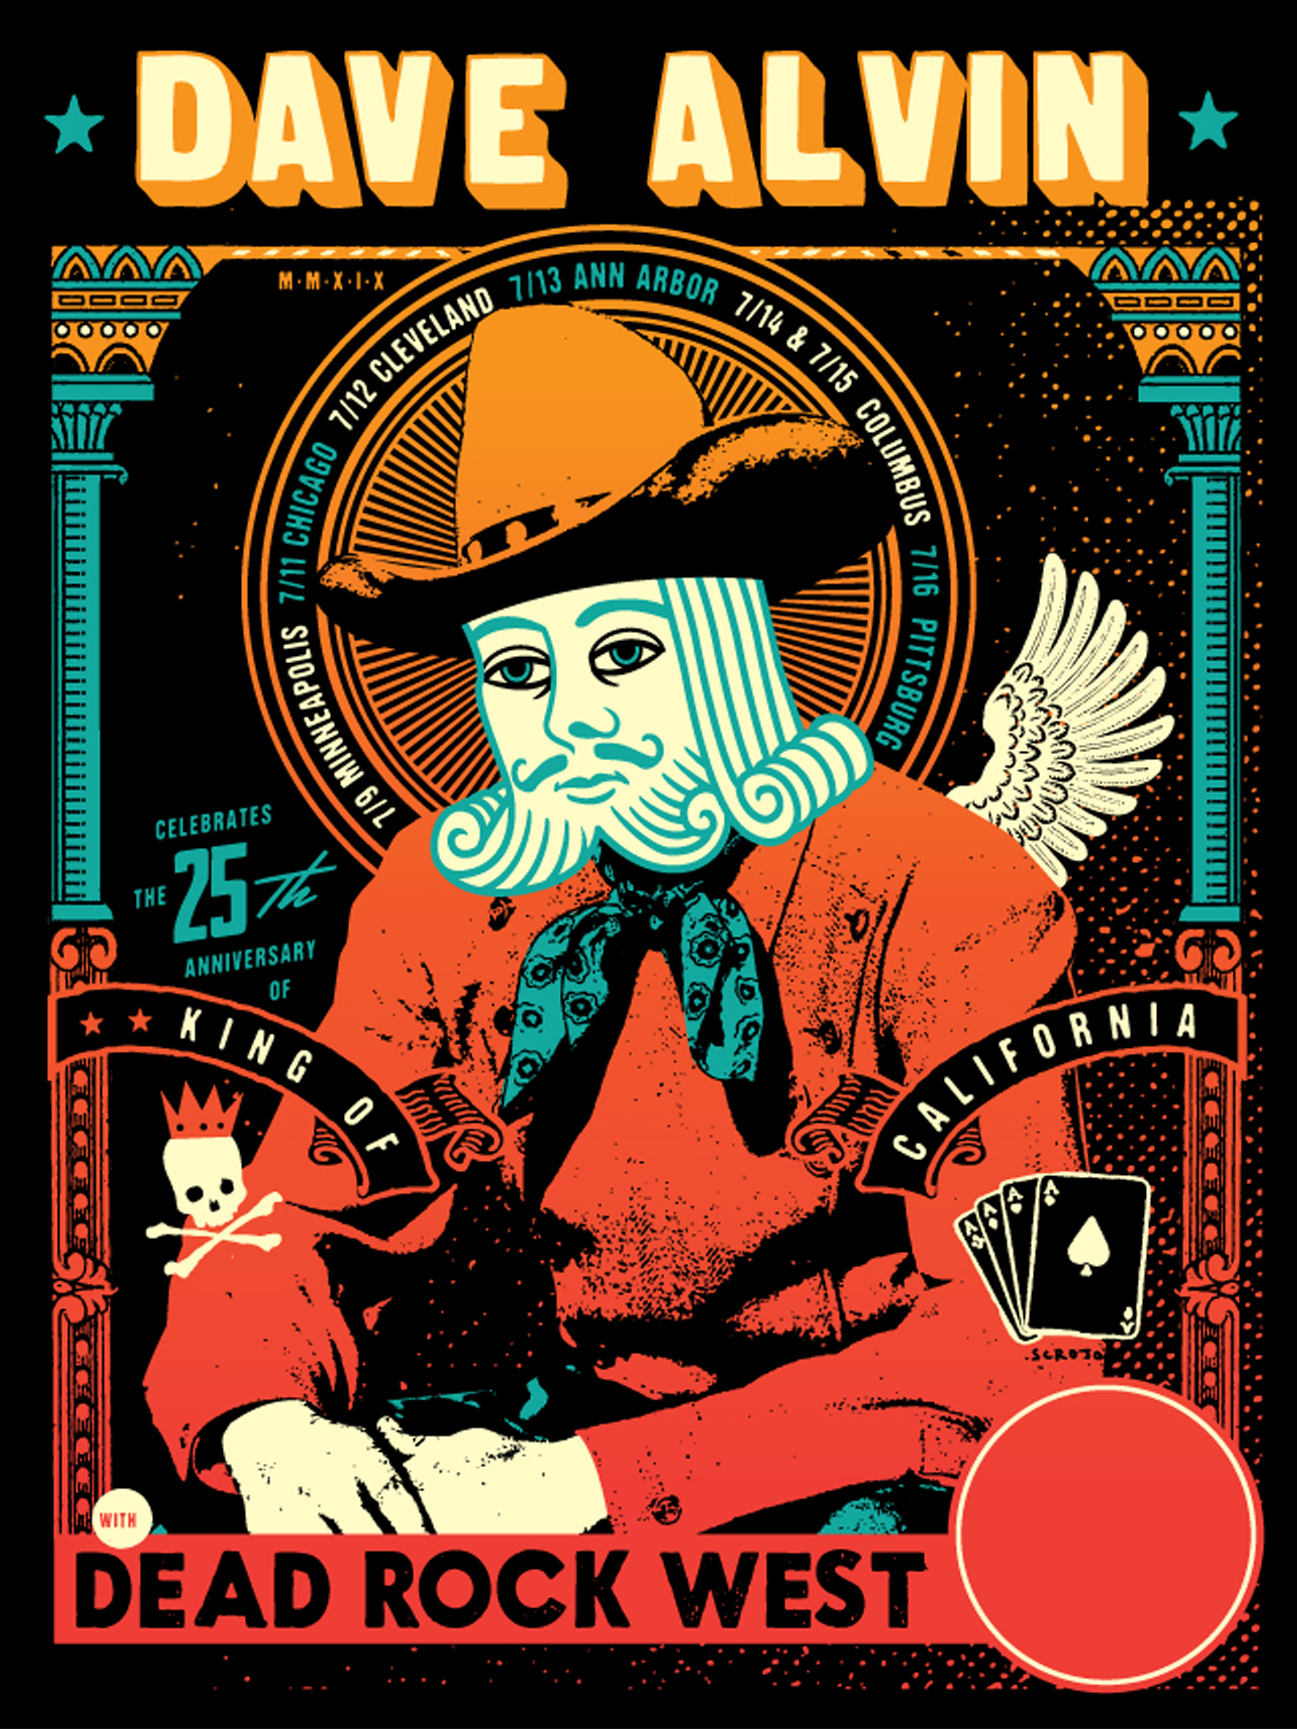 Copy of Dave Alvin Tour July 2019 - OFFICIAL POSTER